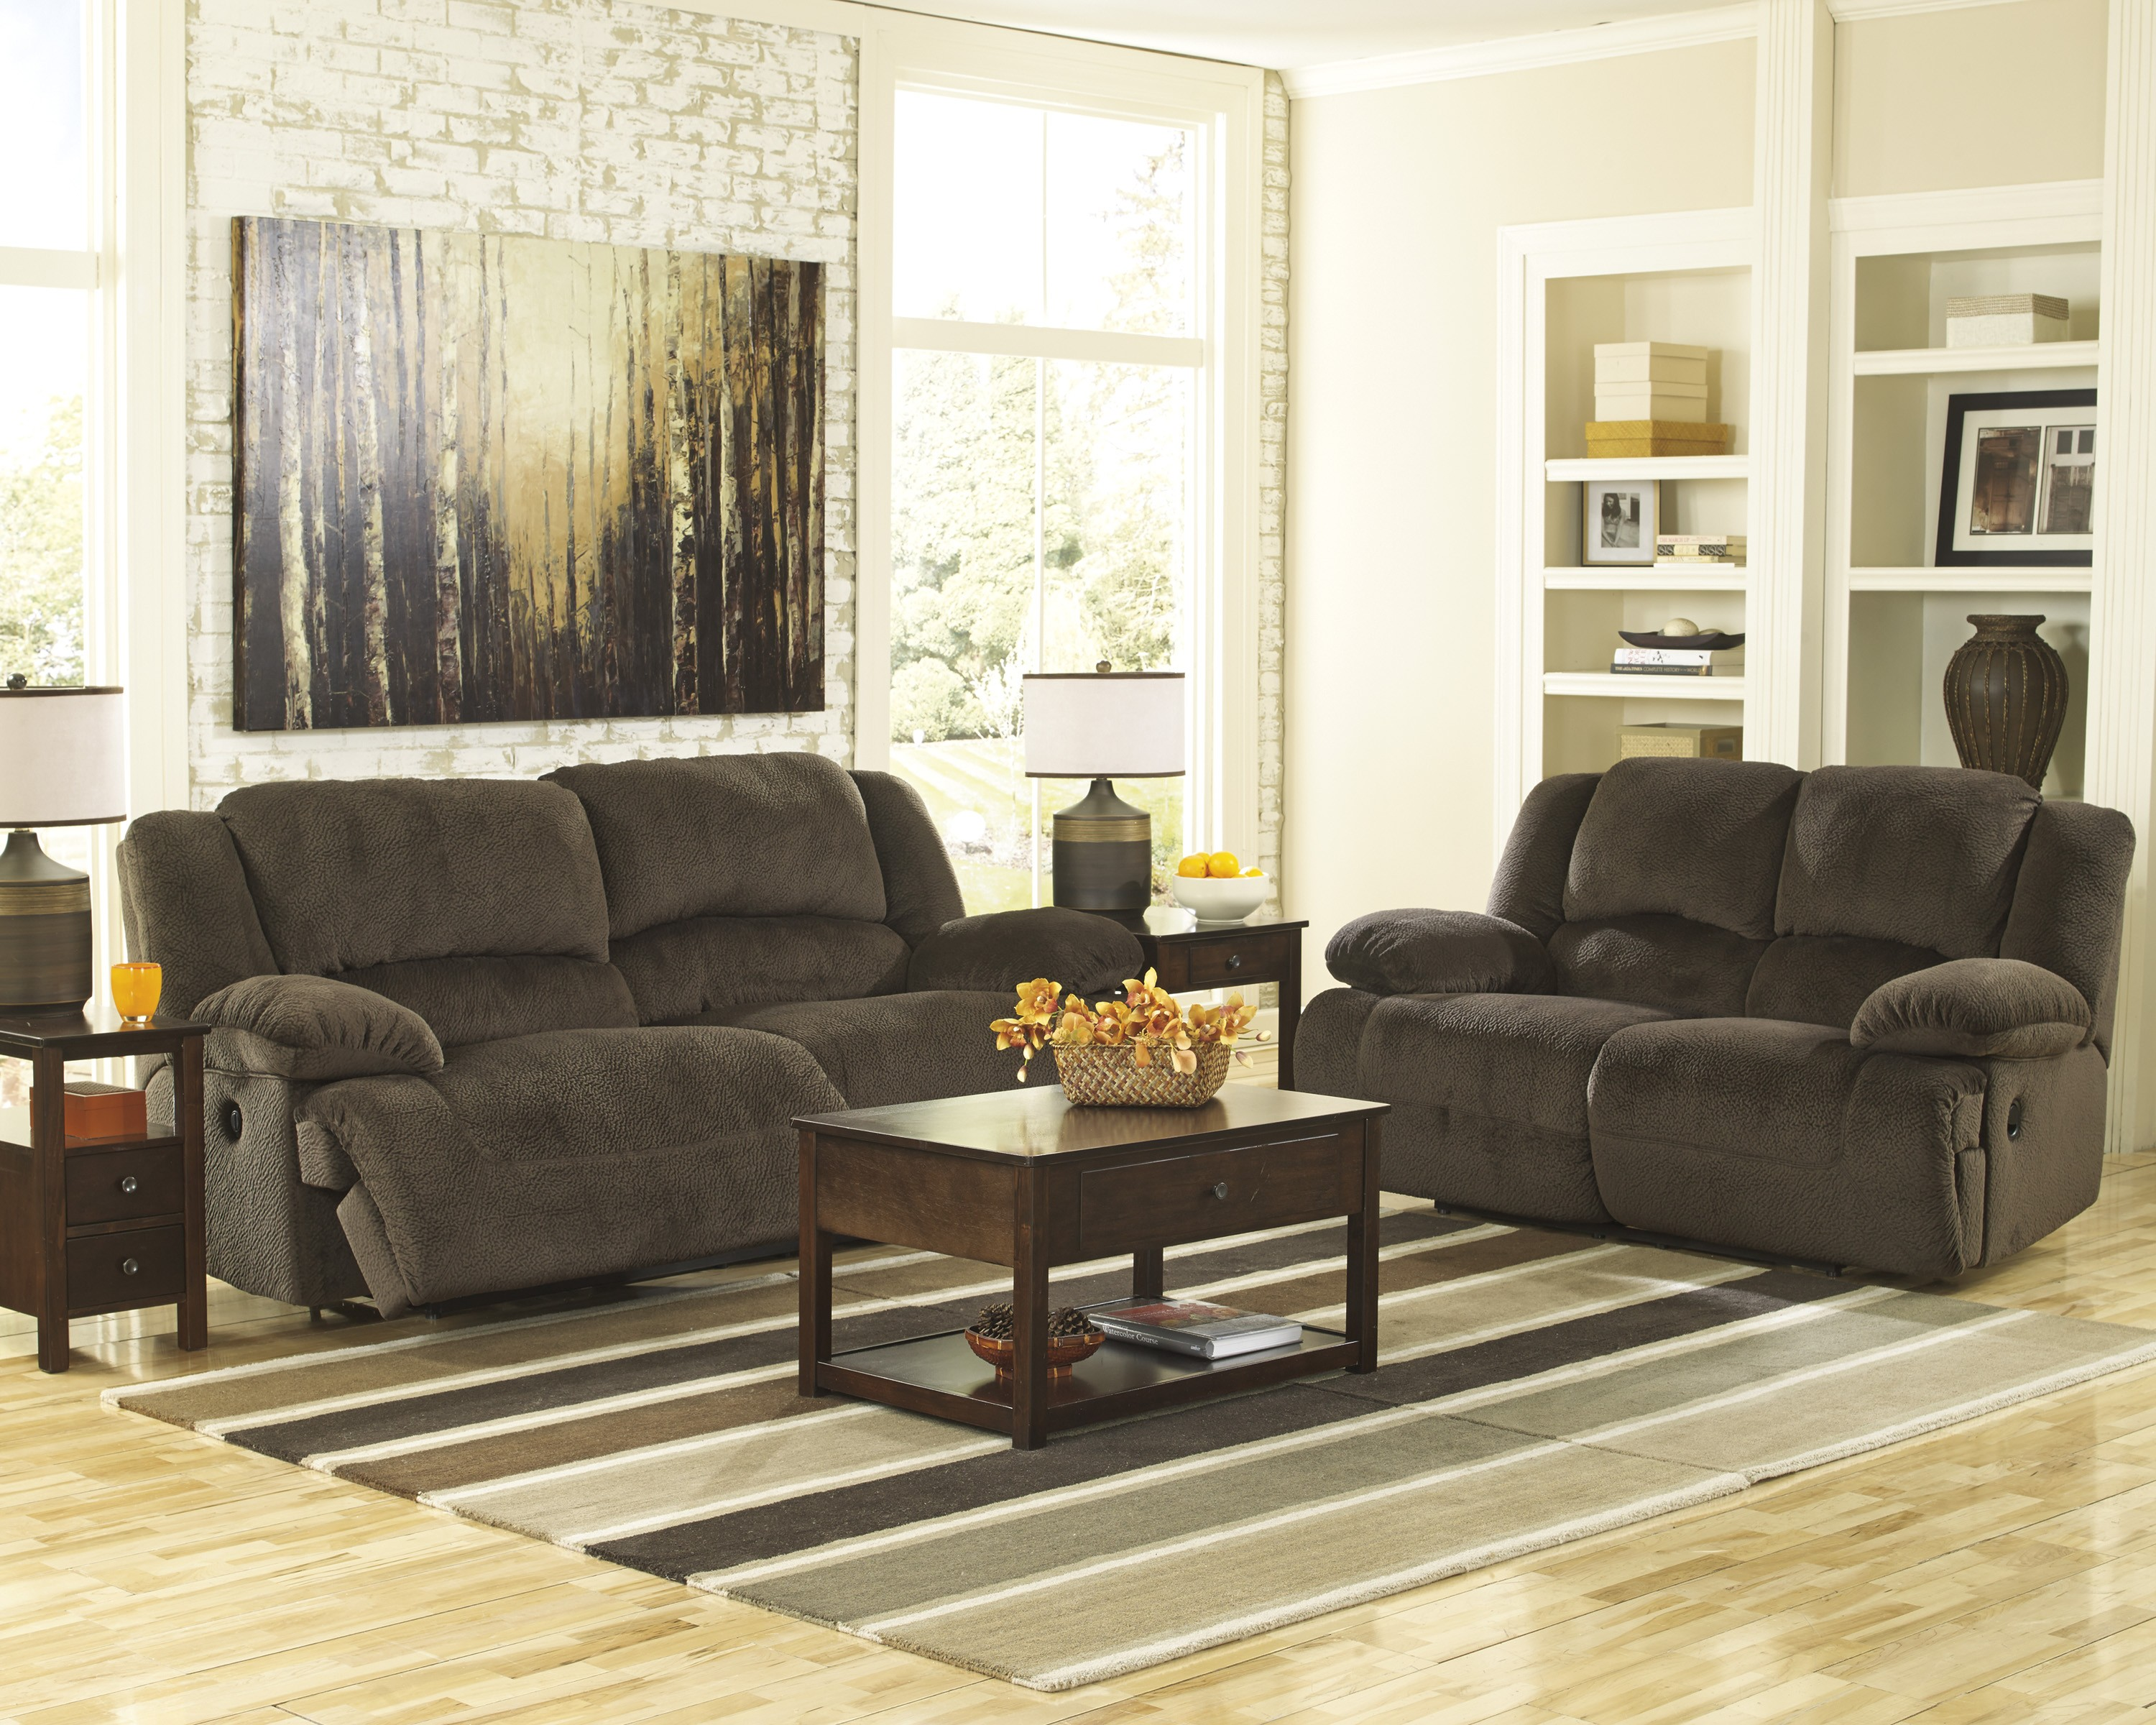 Marvellous ashley furniture tucson for home furniture with ashley furniture tucson az